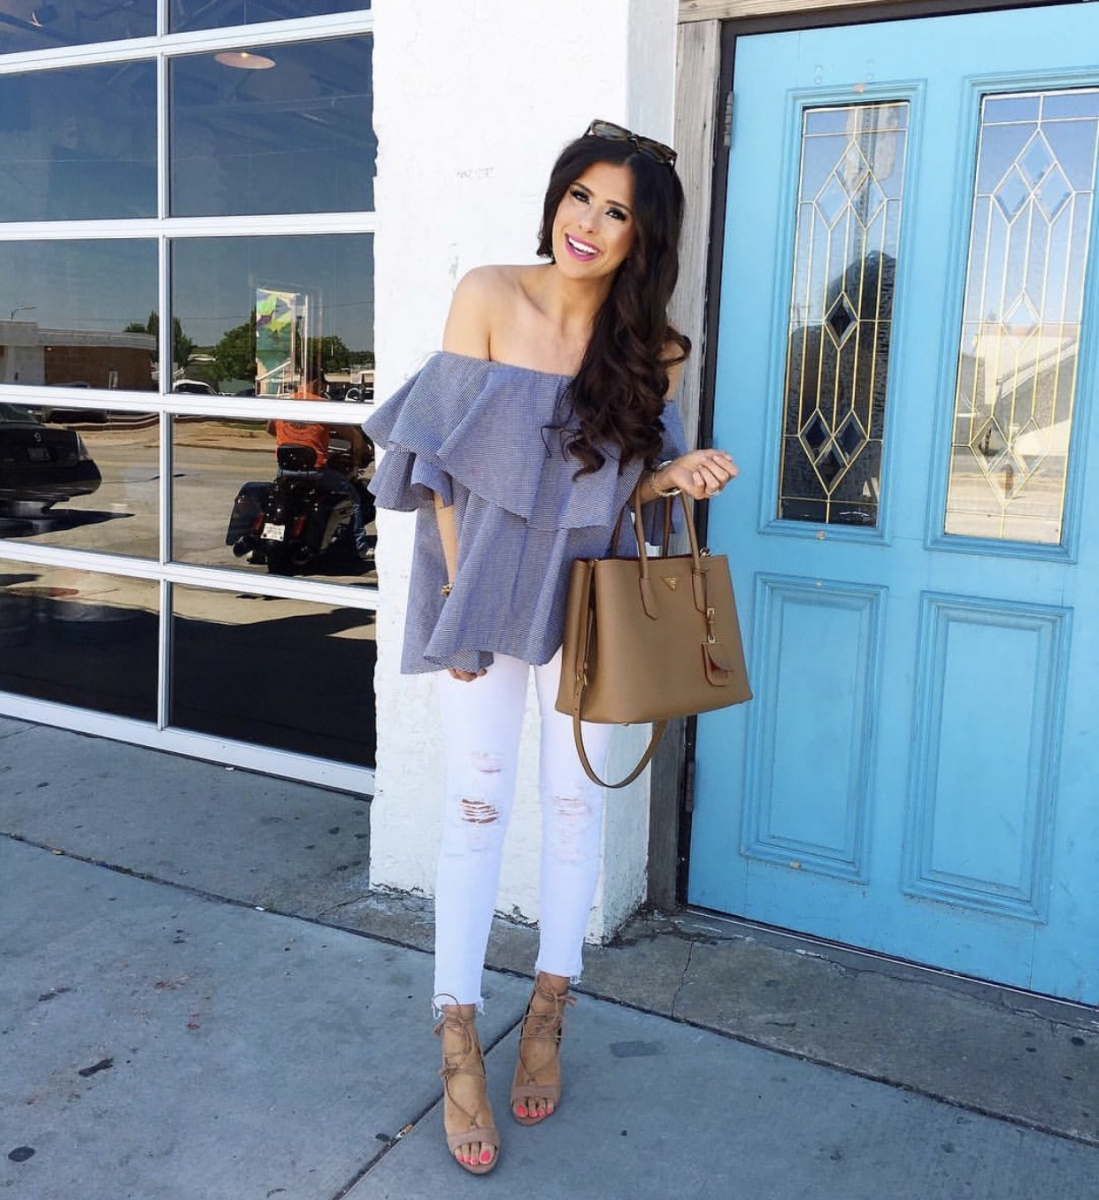 pinterest spring fashion 2017, white jeans outfits, MLM off the shoulder top, emily gemma ,the sweetest thing